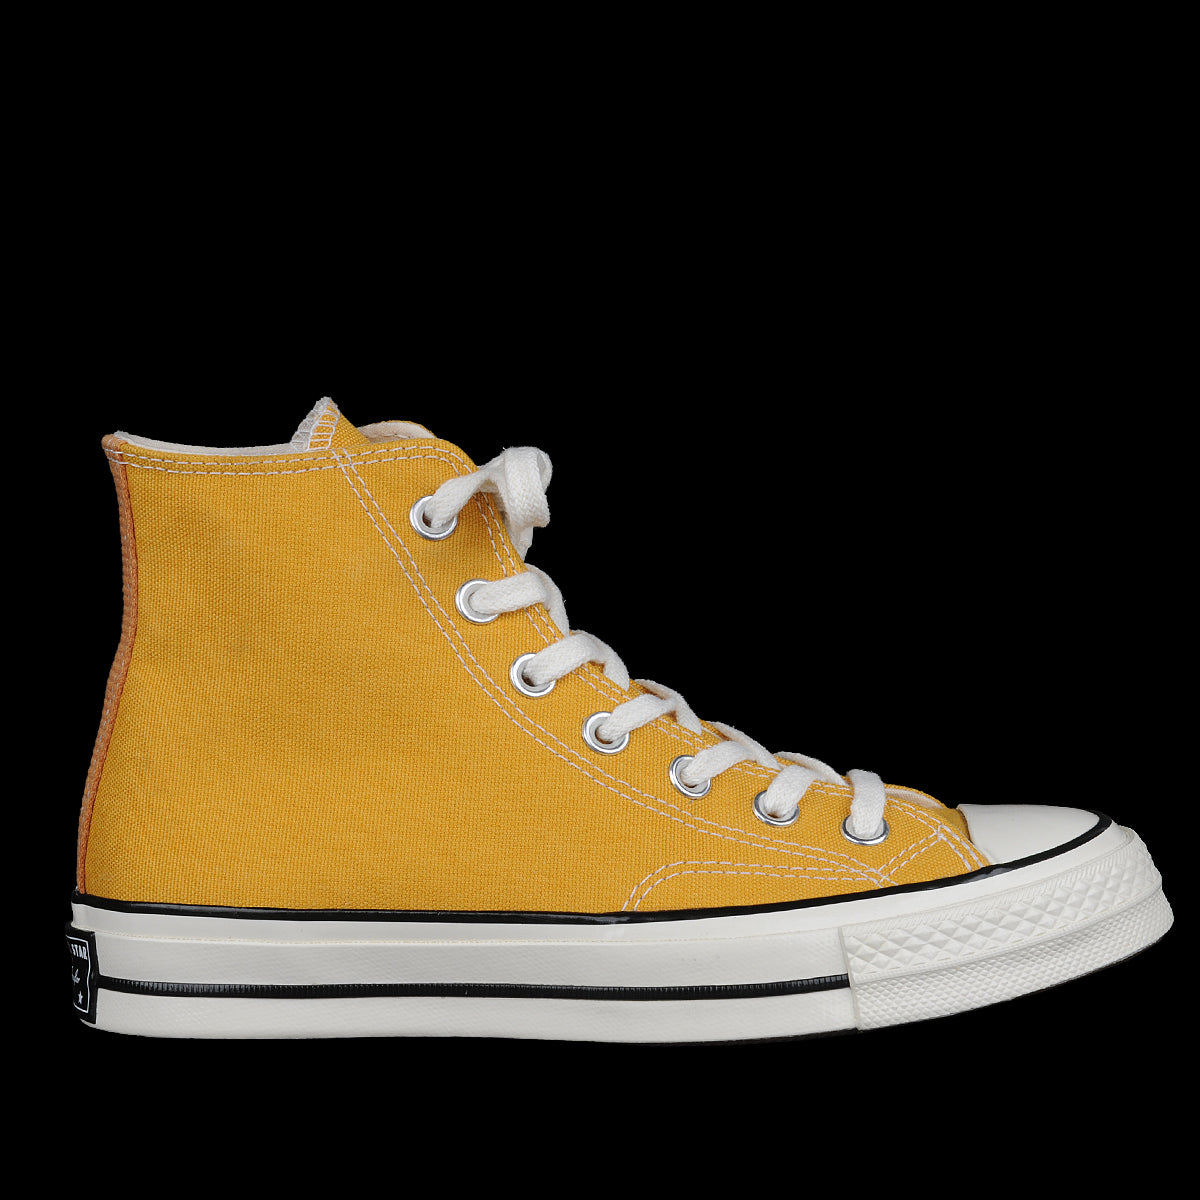 0cf385c52754de Converse - Chuck Taylor All Star 70 Hi in Sunflower - UNIONMADE